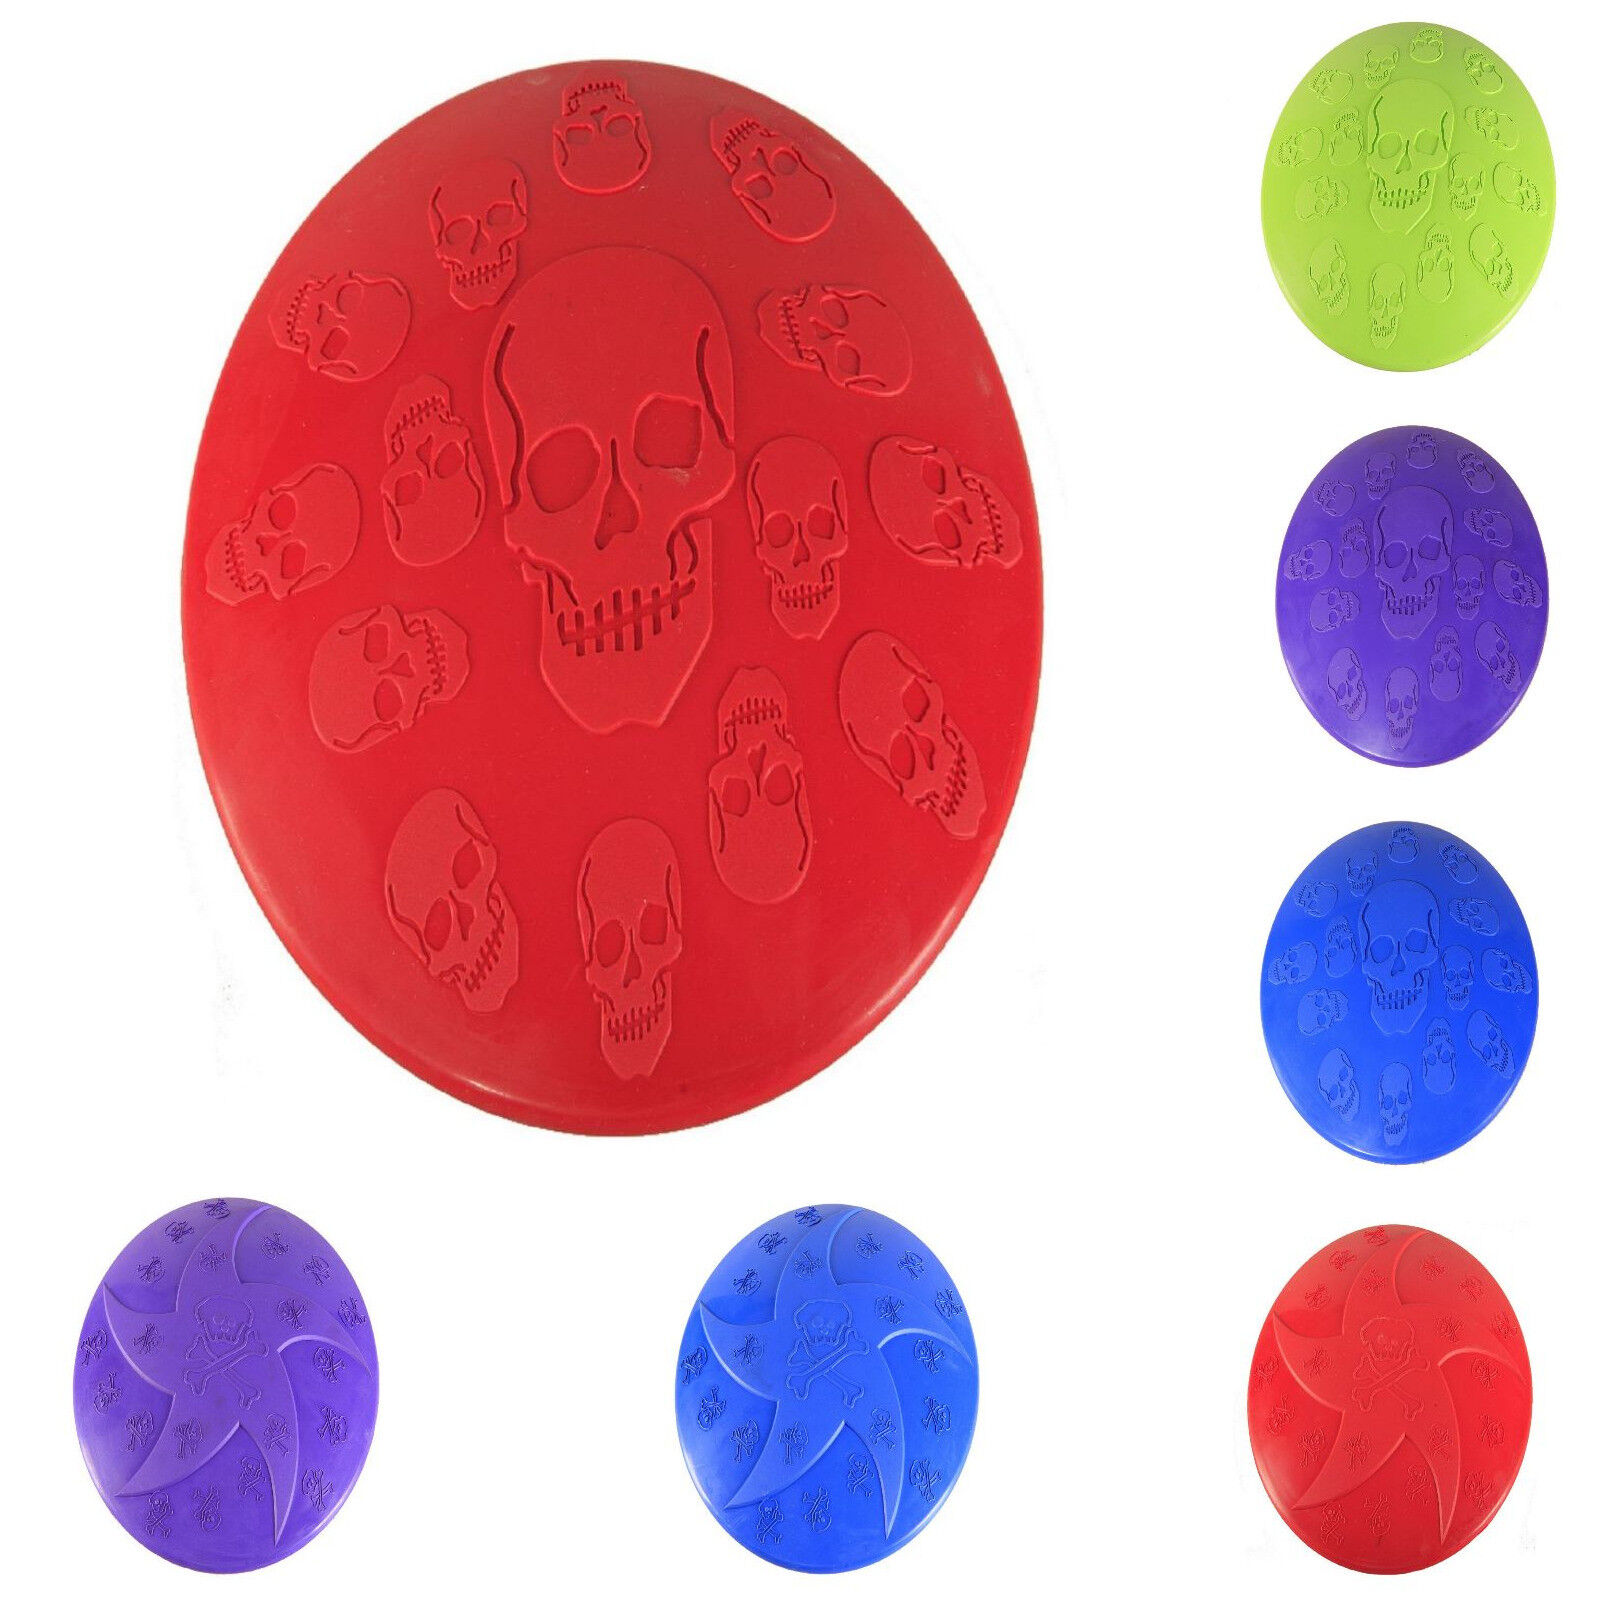 Pet Toy Soft Rubber Frisbee Fetch Throwing Training Colorful